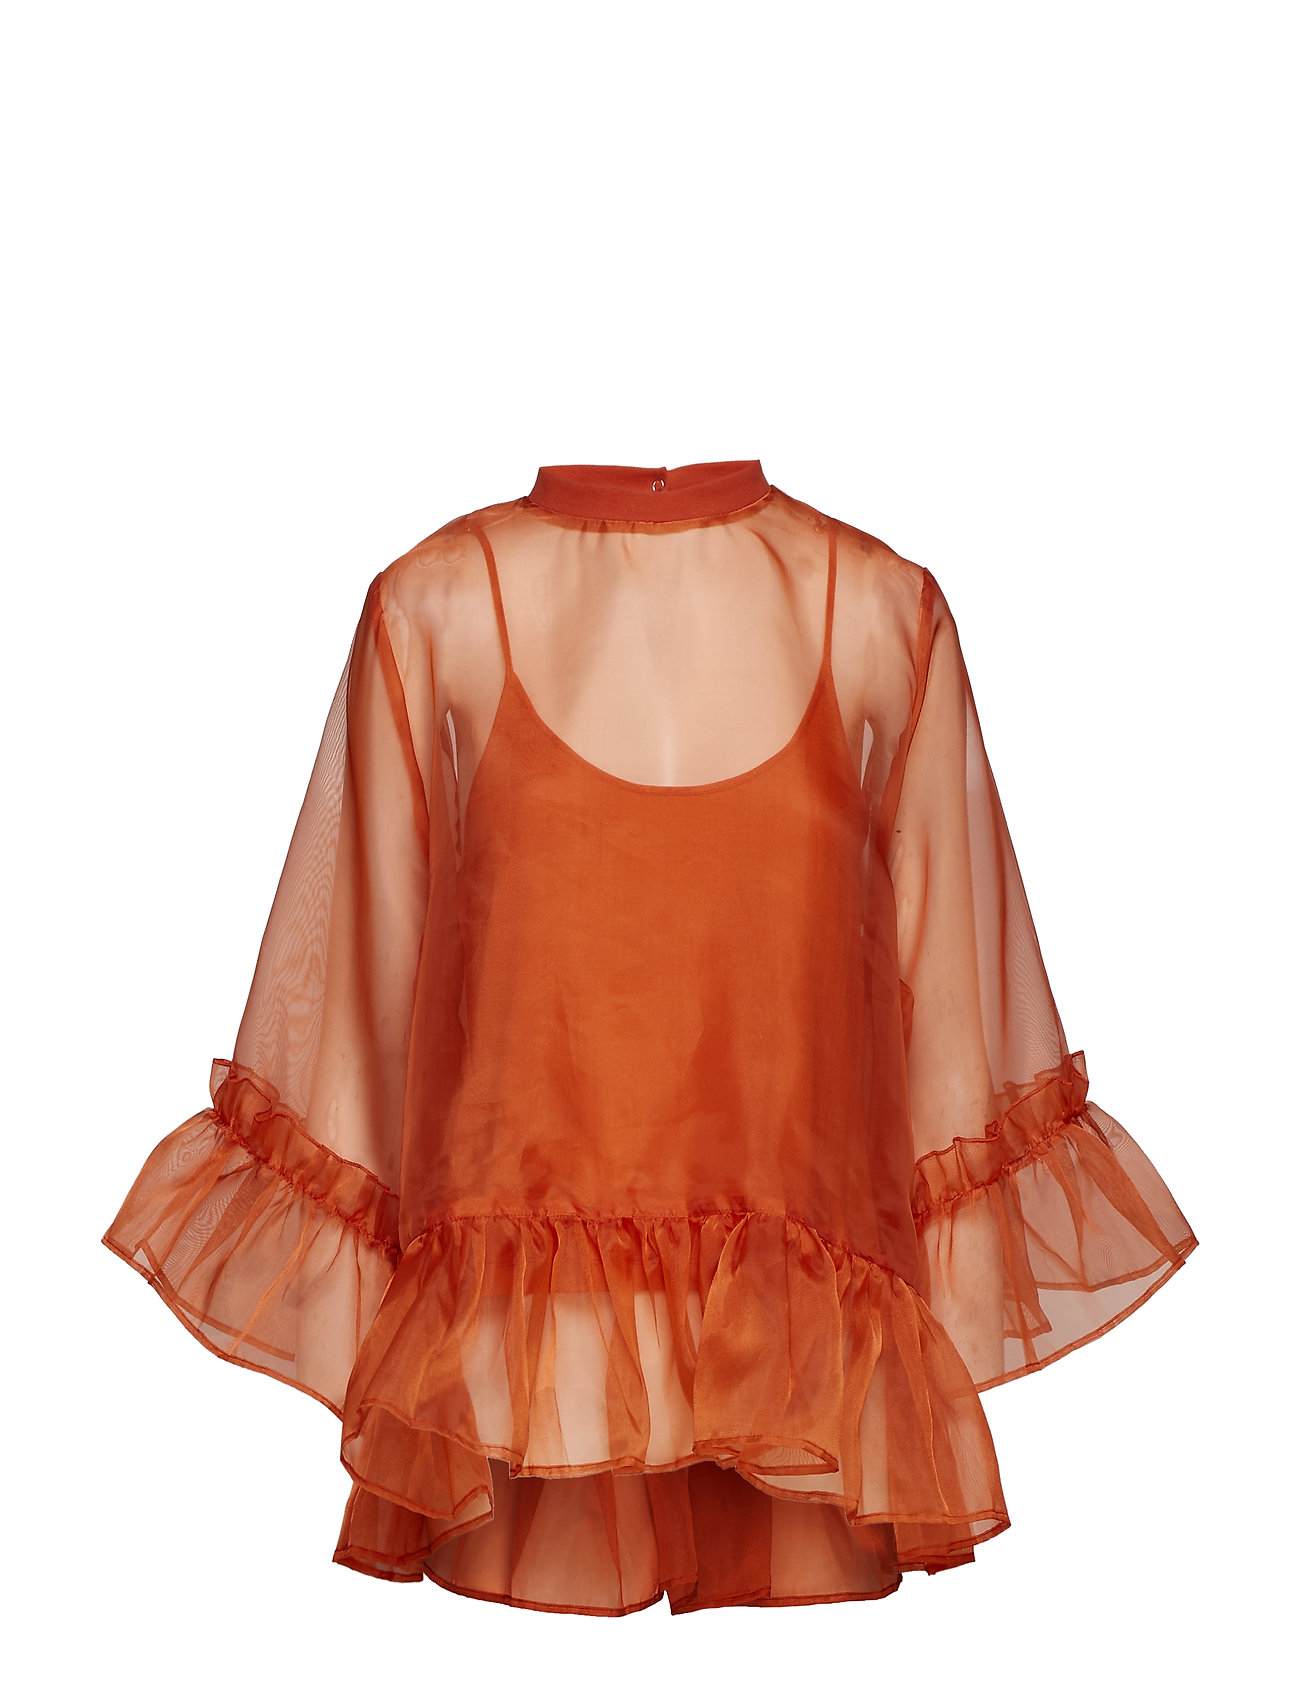 HOLZWEILER CURVING Top - MECCA ORANGE